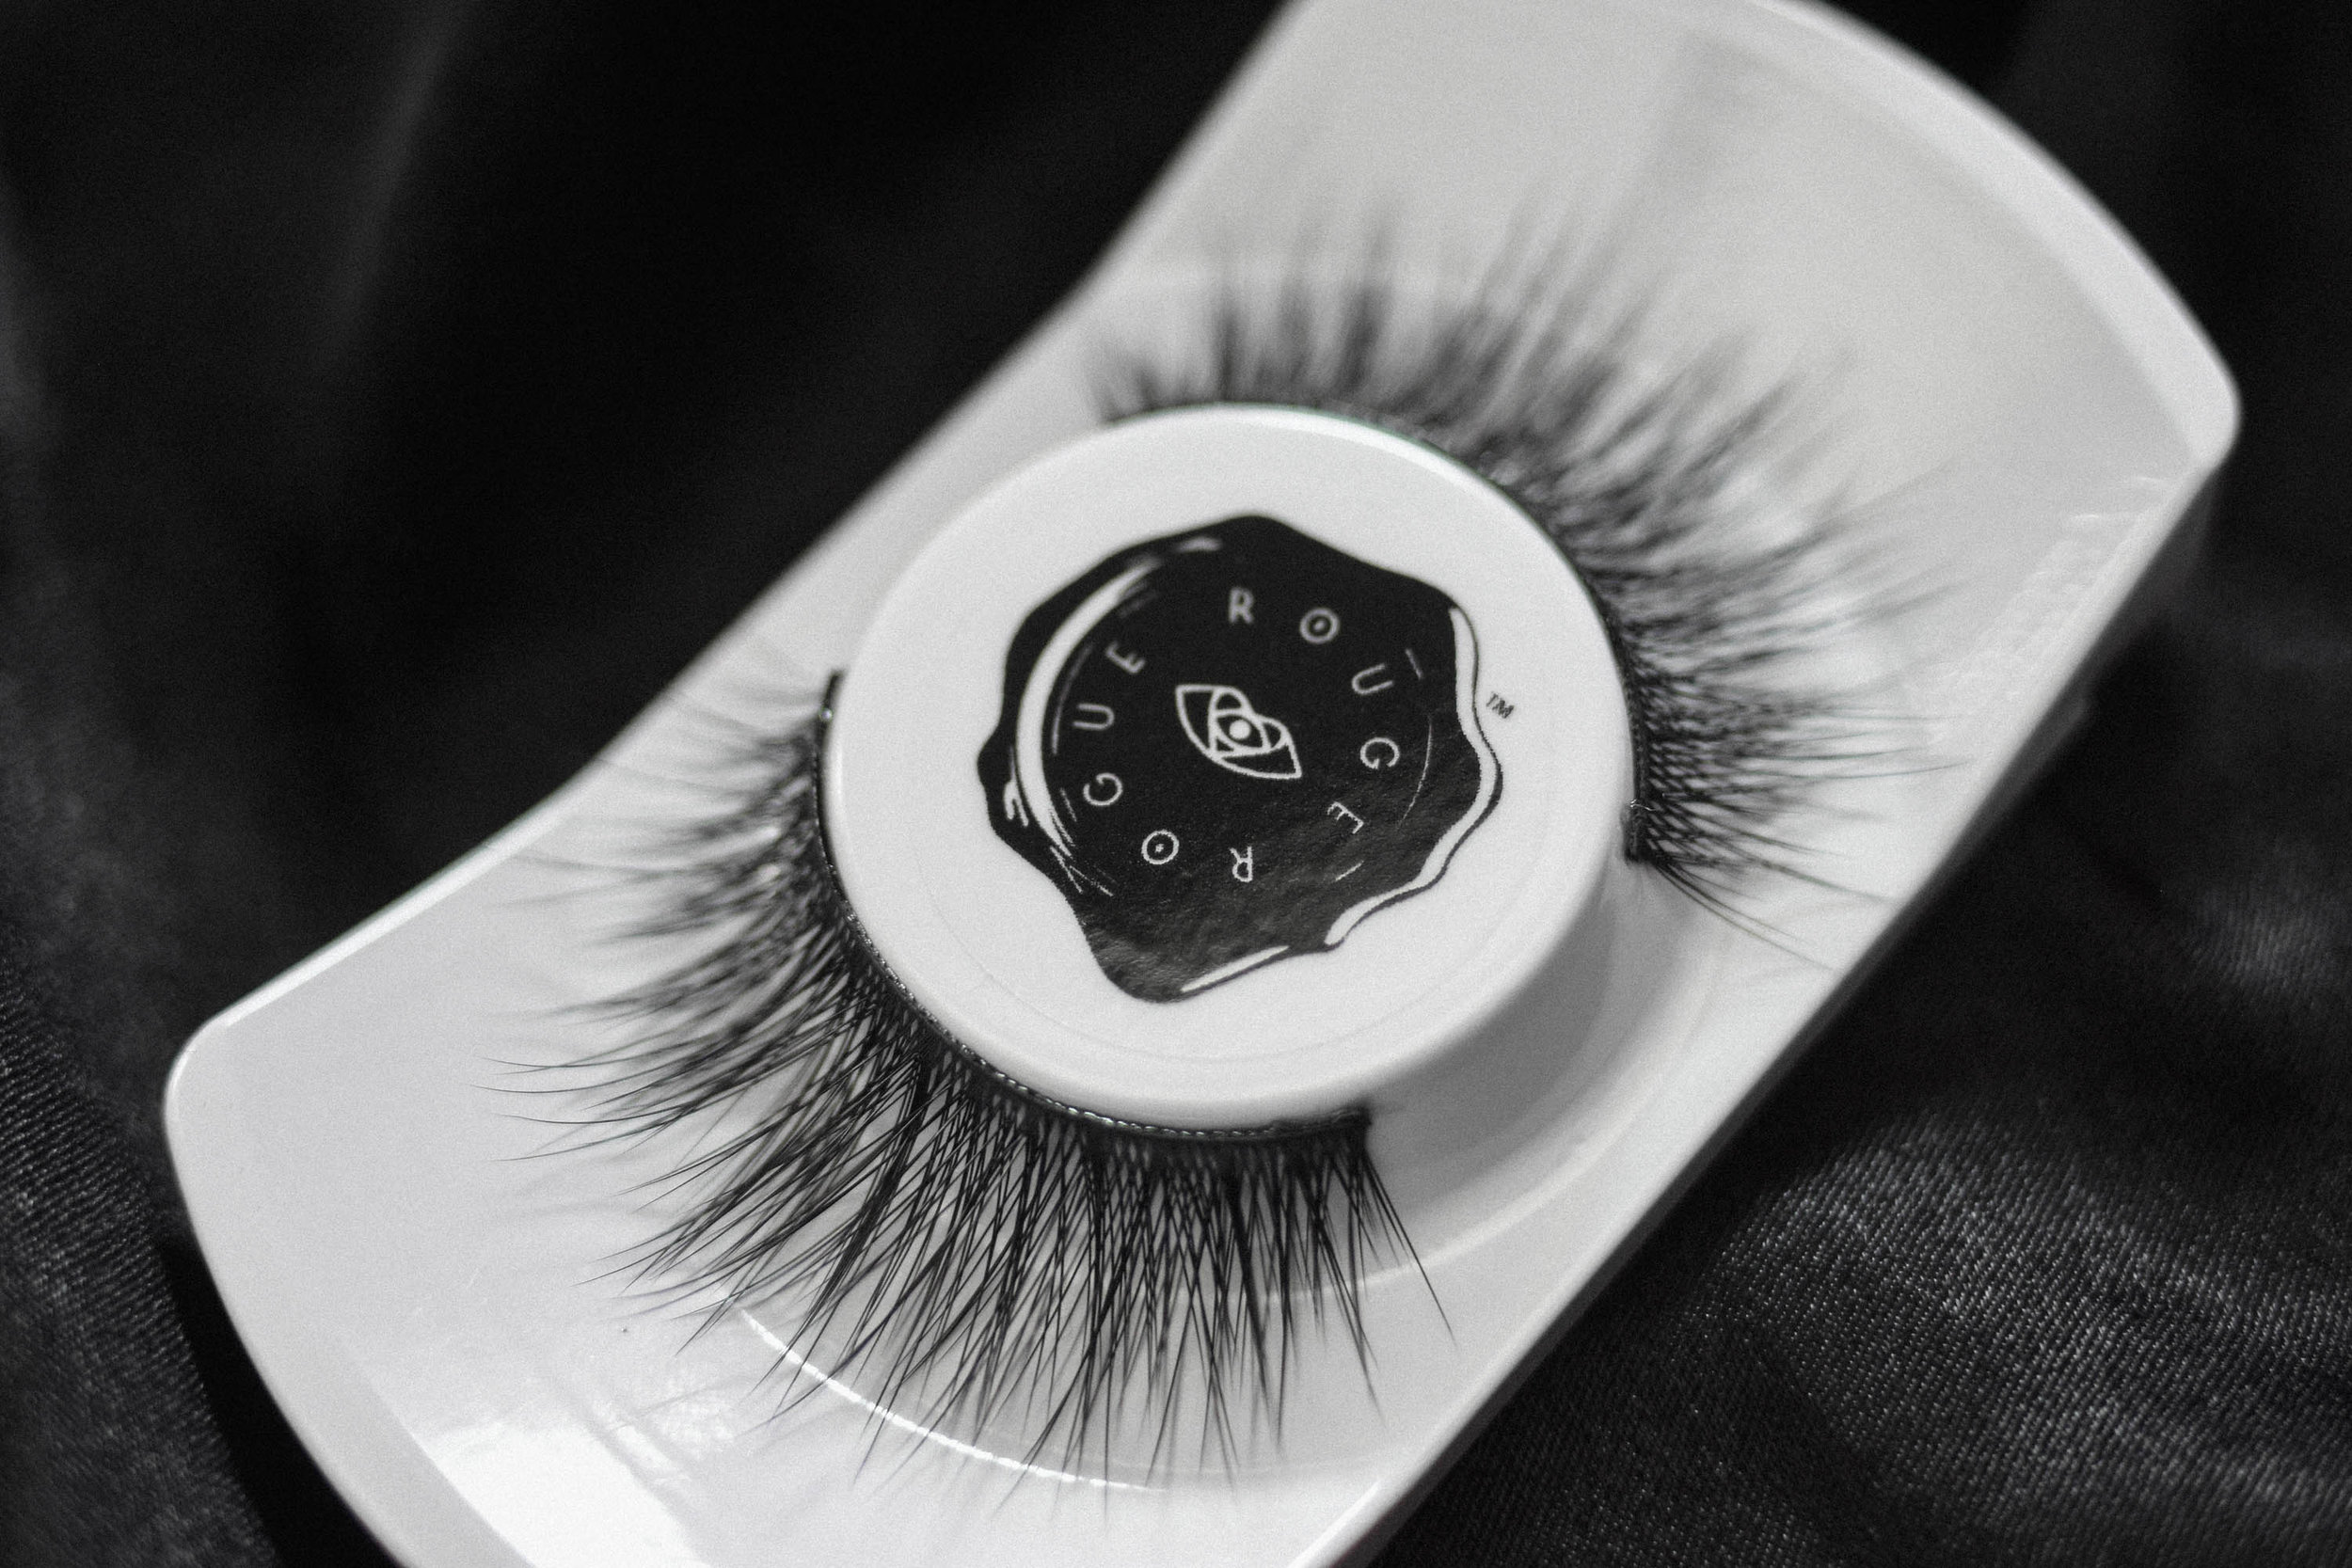 Chaos   If your lids play by the rules, they miss all the fun. Let 'Chaos' give all those normal, boring lashes a run for their money! This style creates the perfect amount of havoc for your lids – long and fluffy, but still super wearable. Dual-tapered and multi-tiered.